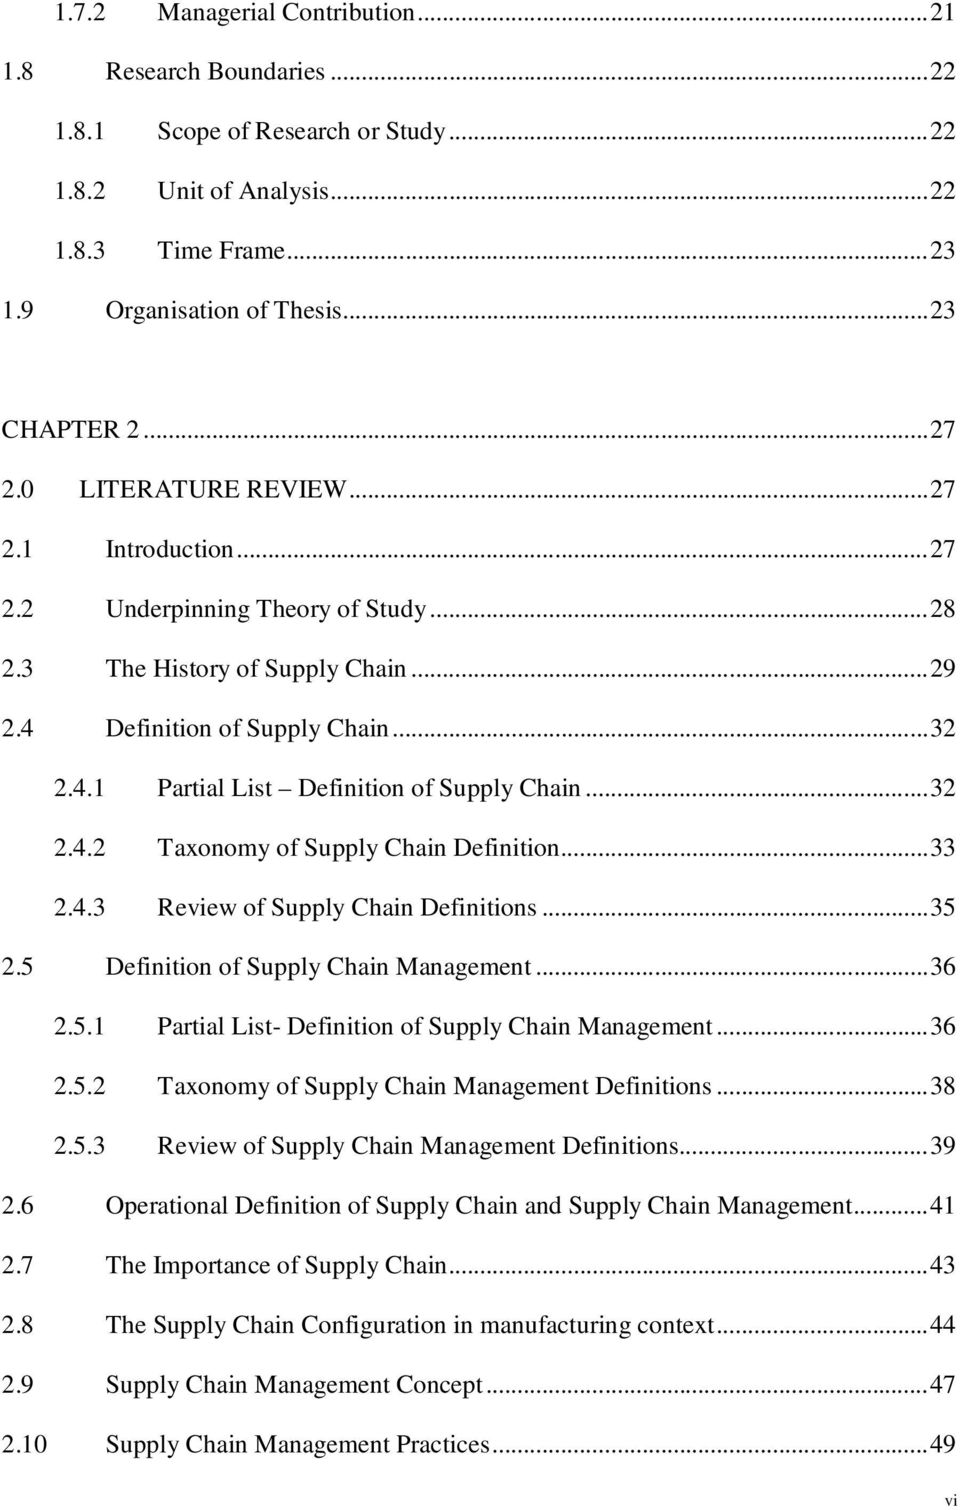 ..32 2.4.2 Taxonomy of Supply Chain Definition...33 2.4.3 Review of Supply Chain Definitions...35 2.5 Definition of Supply Chain Management...36 2.5.1 Partial List- Definition of Supply Chain Management.